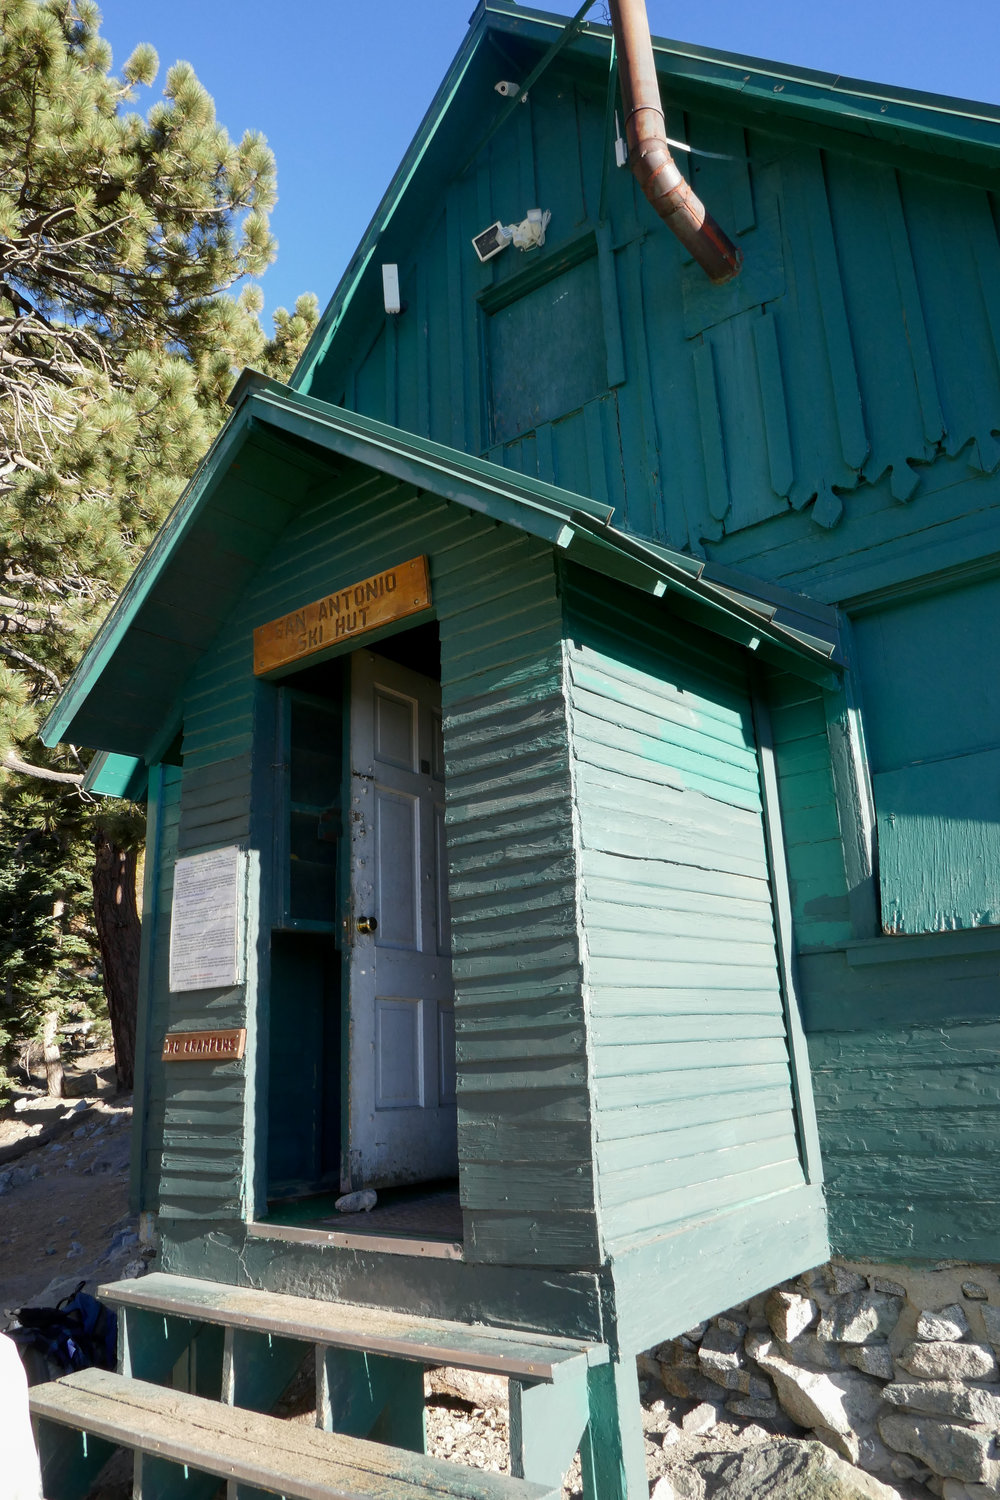 The San Antonio Ski Hut is a nice place to take a break before continuing on your journey.